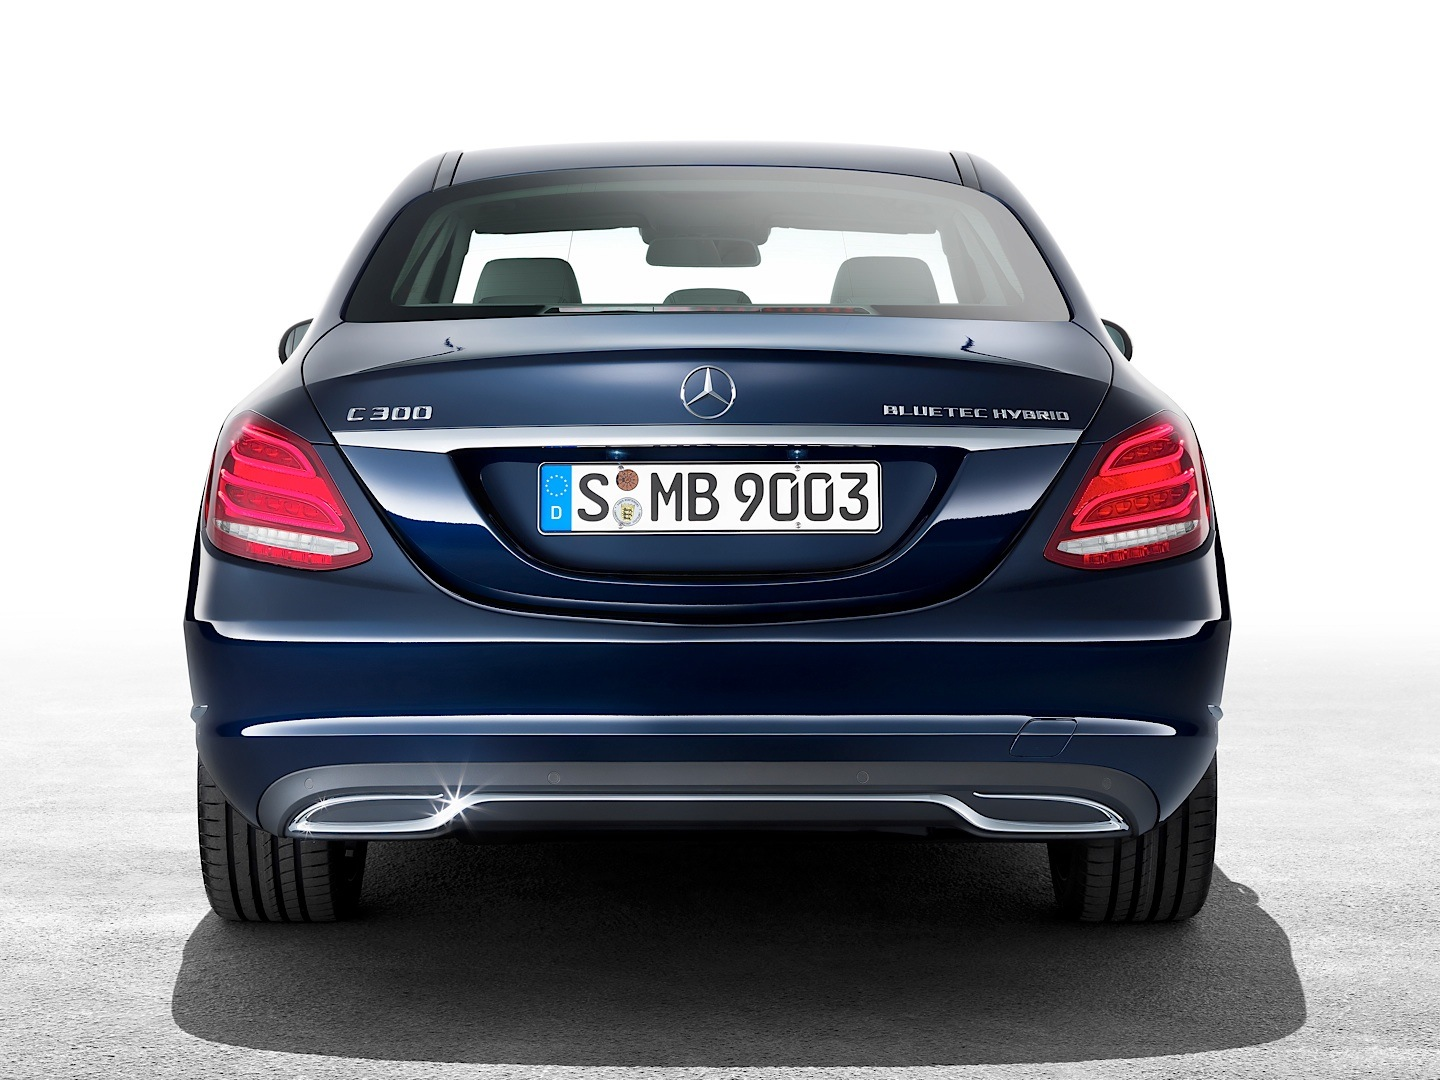 check-out-the-first-official-footage-with-the-new-c-class-w205-video-1080p-14